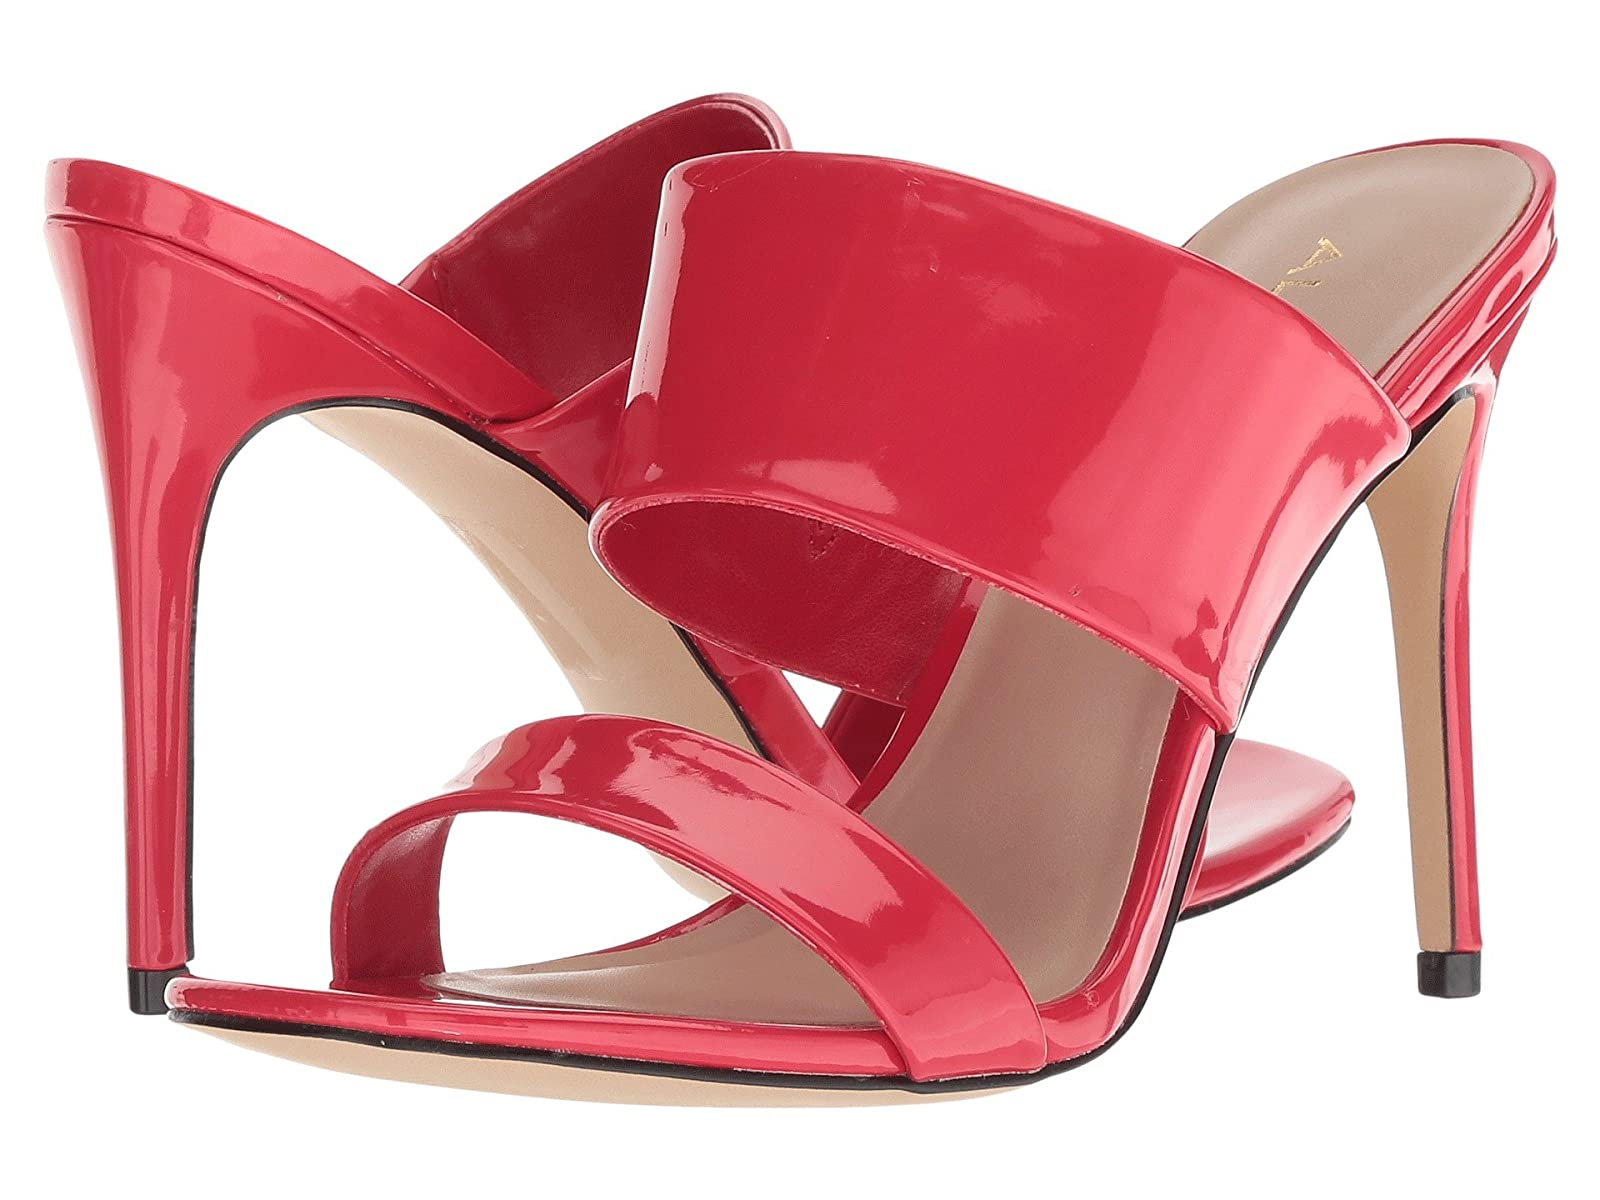 ALDO FroemaCheap and distinctive eye-catching shoes